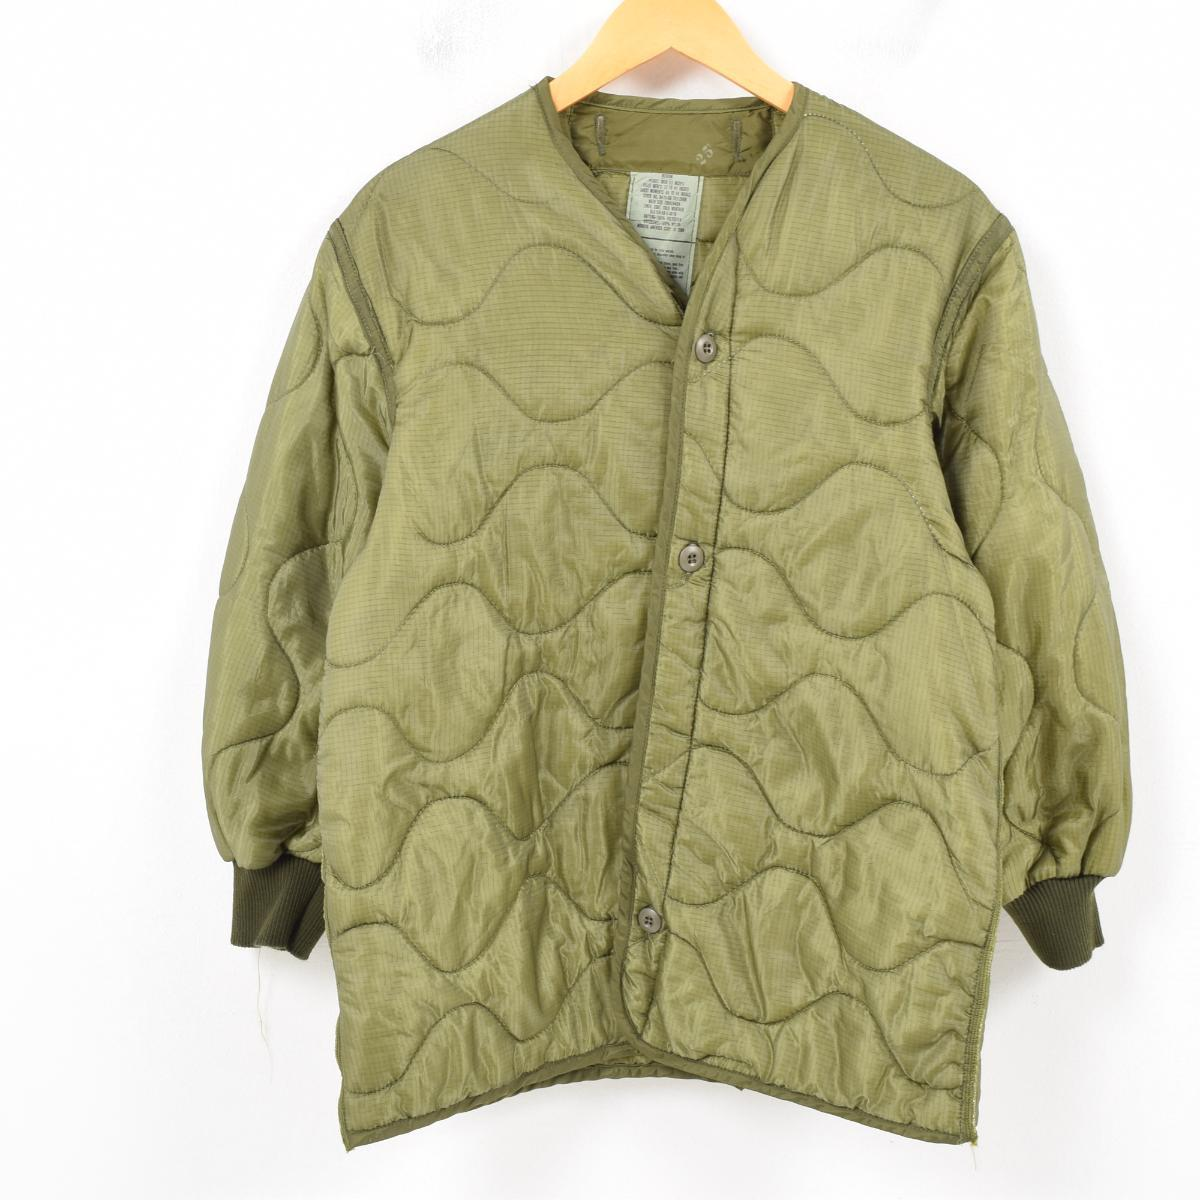 hight resolution of lady s m vintage wau2535 for jam remake 88 years made in m 65 military liner jacket usa with the delivery of goods u s forces true article rib